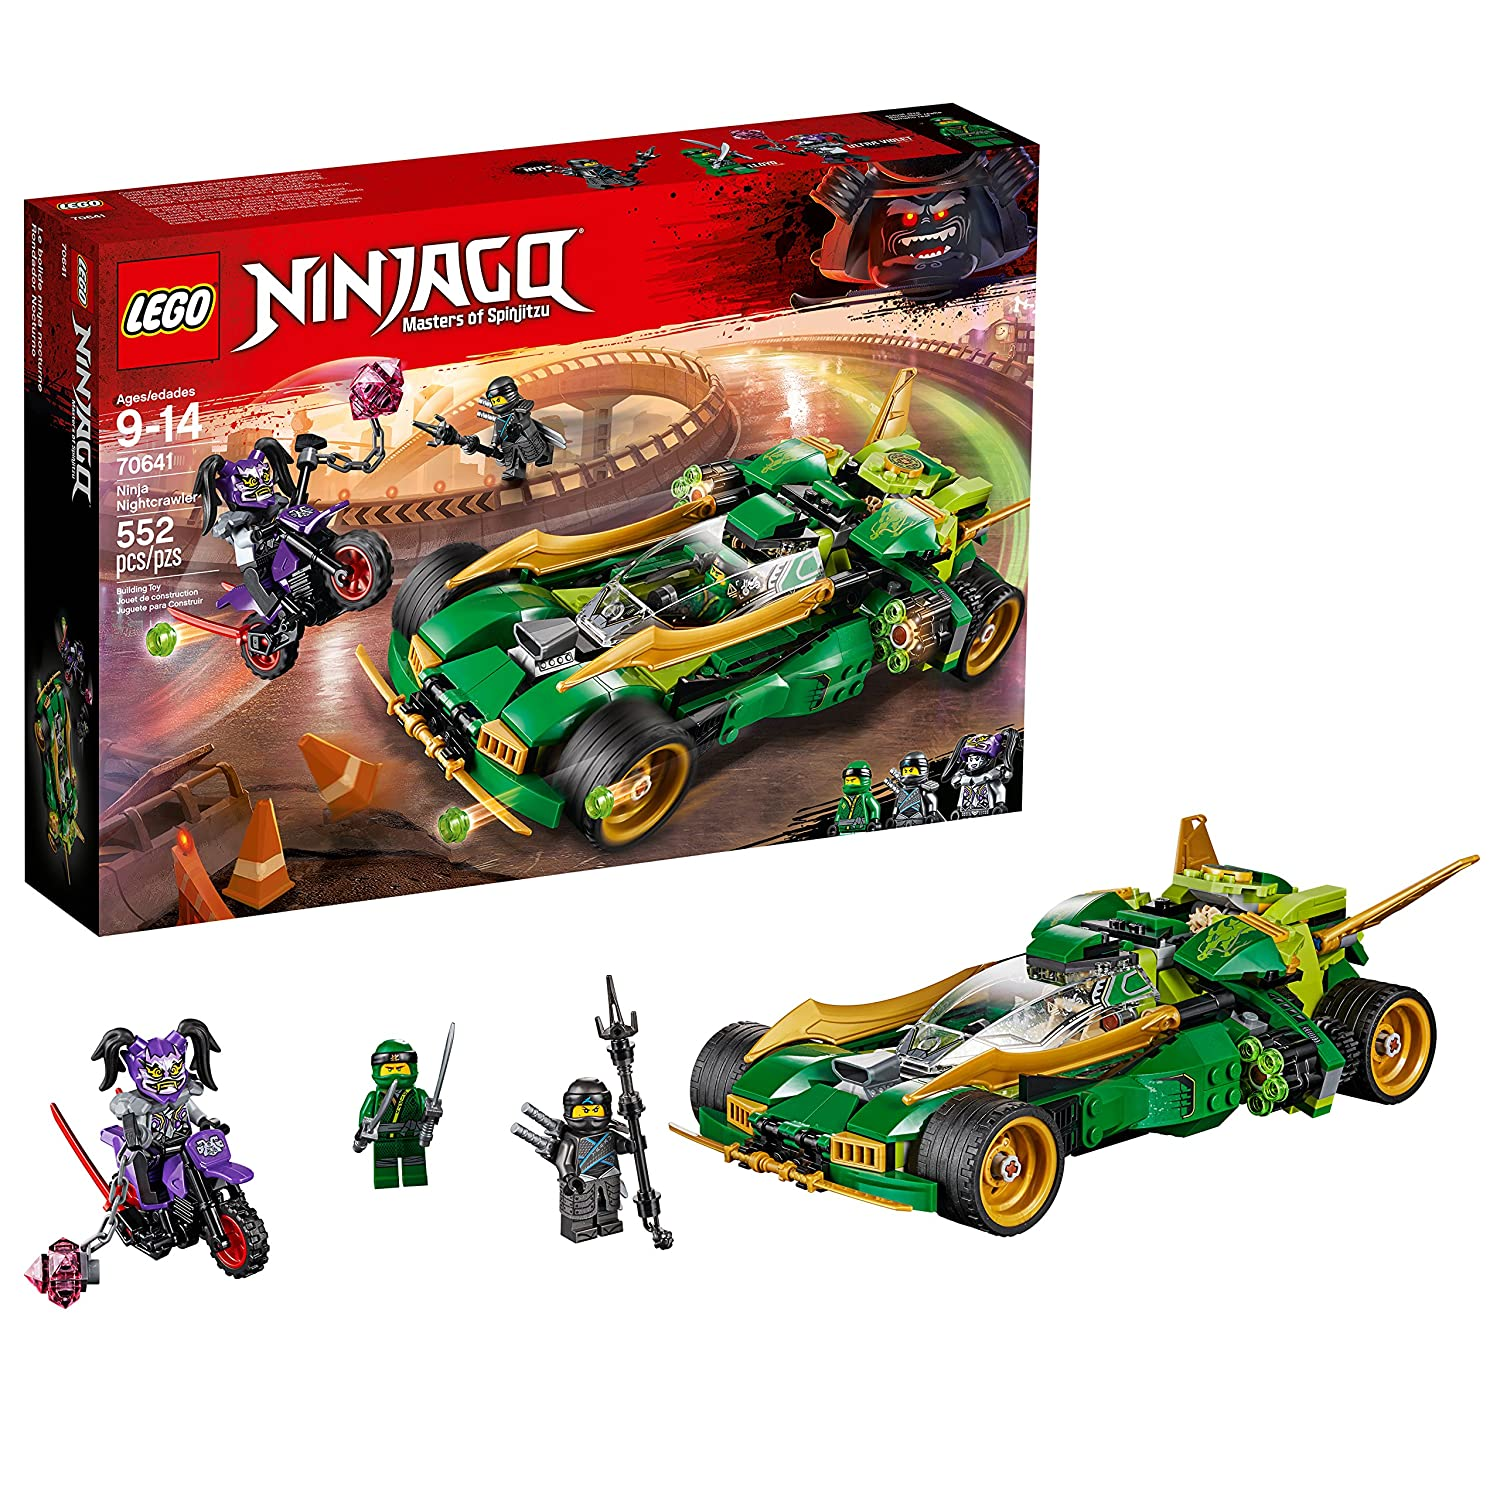 LEGO NINJAGO Ninja Nightcrawler 70641 Building Kit (552 Piece)